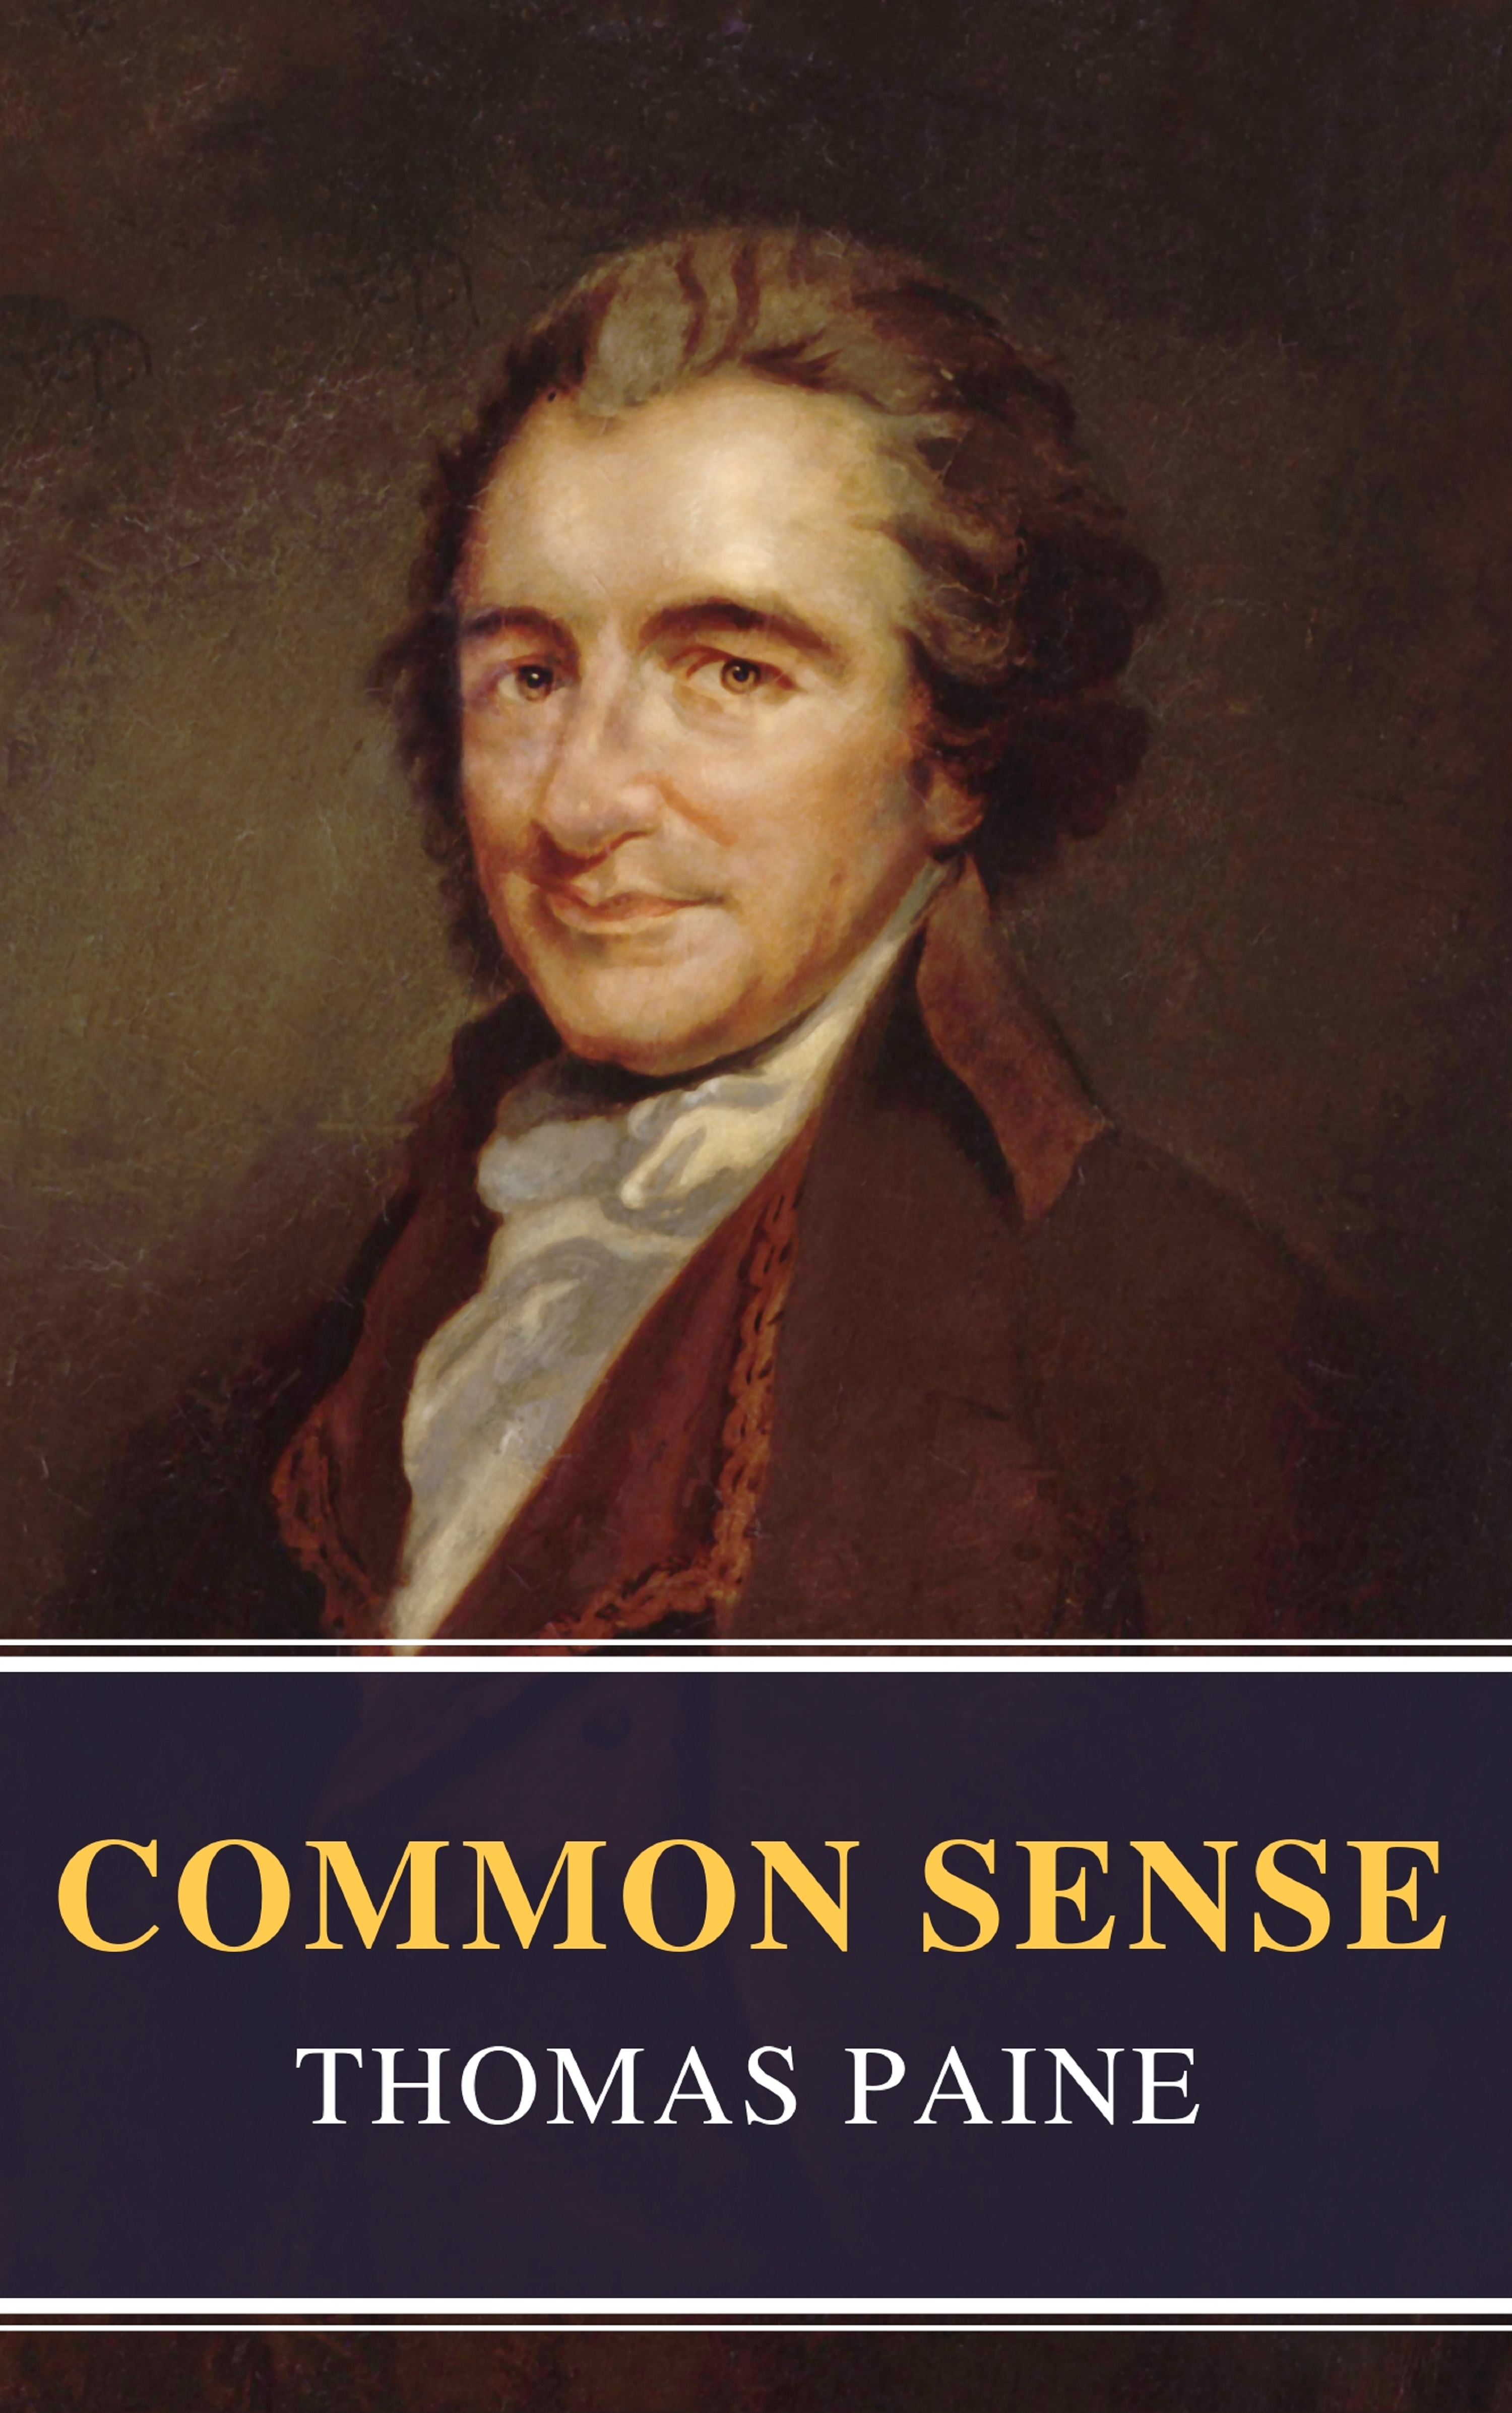 Thomas Paine Common Sense (Annotated): The Origin and Design of Government thomas paine the political works of thomas paine secretary for foreign affairs to the congress of the united